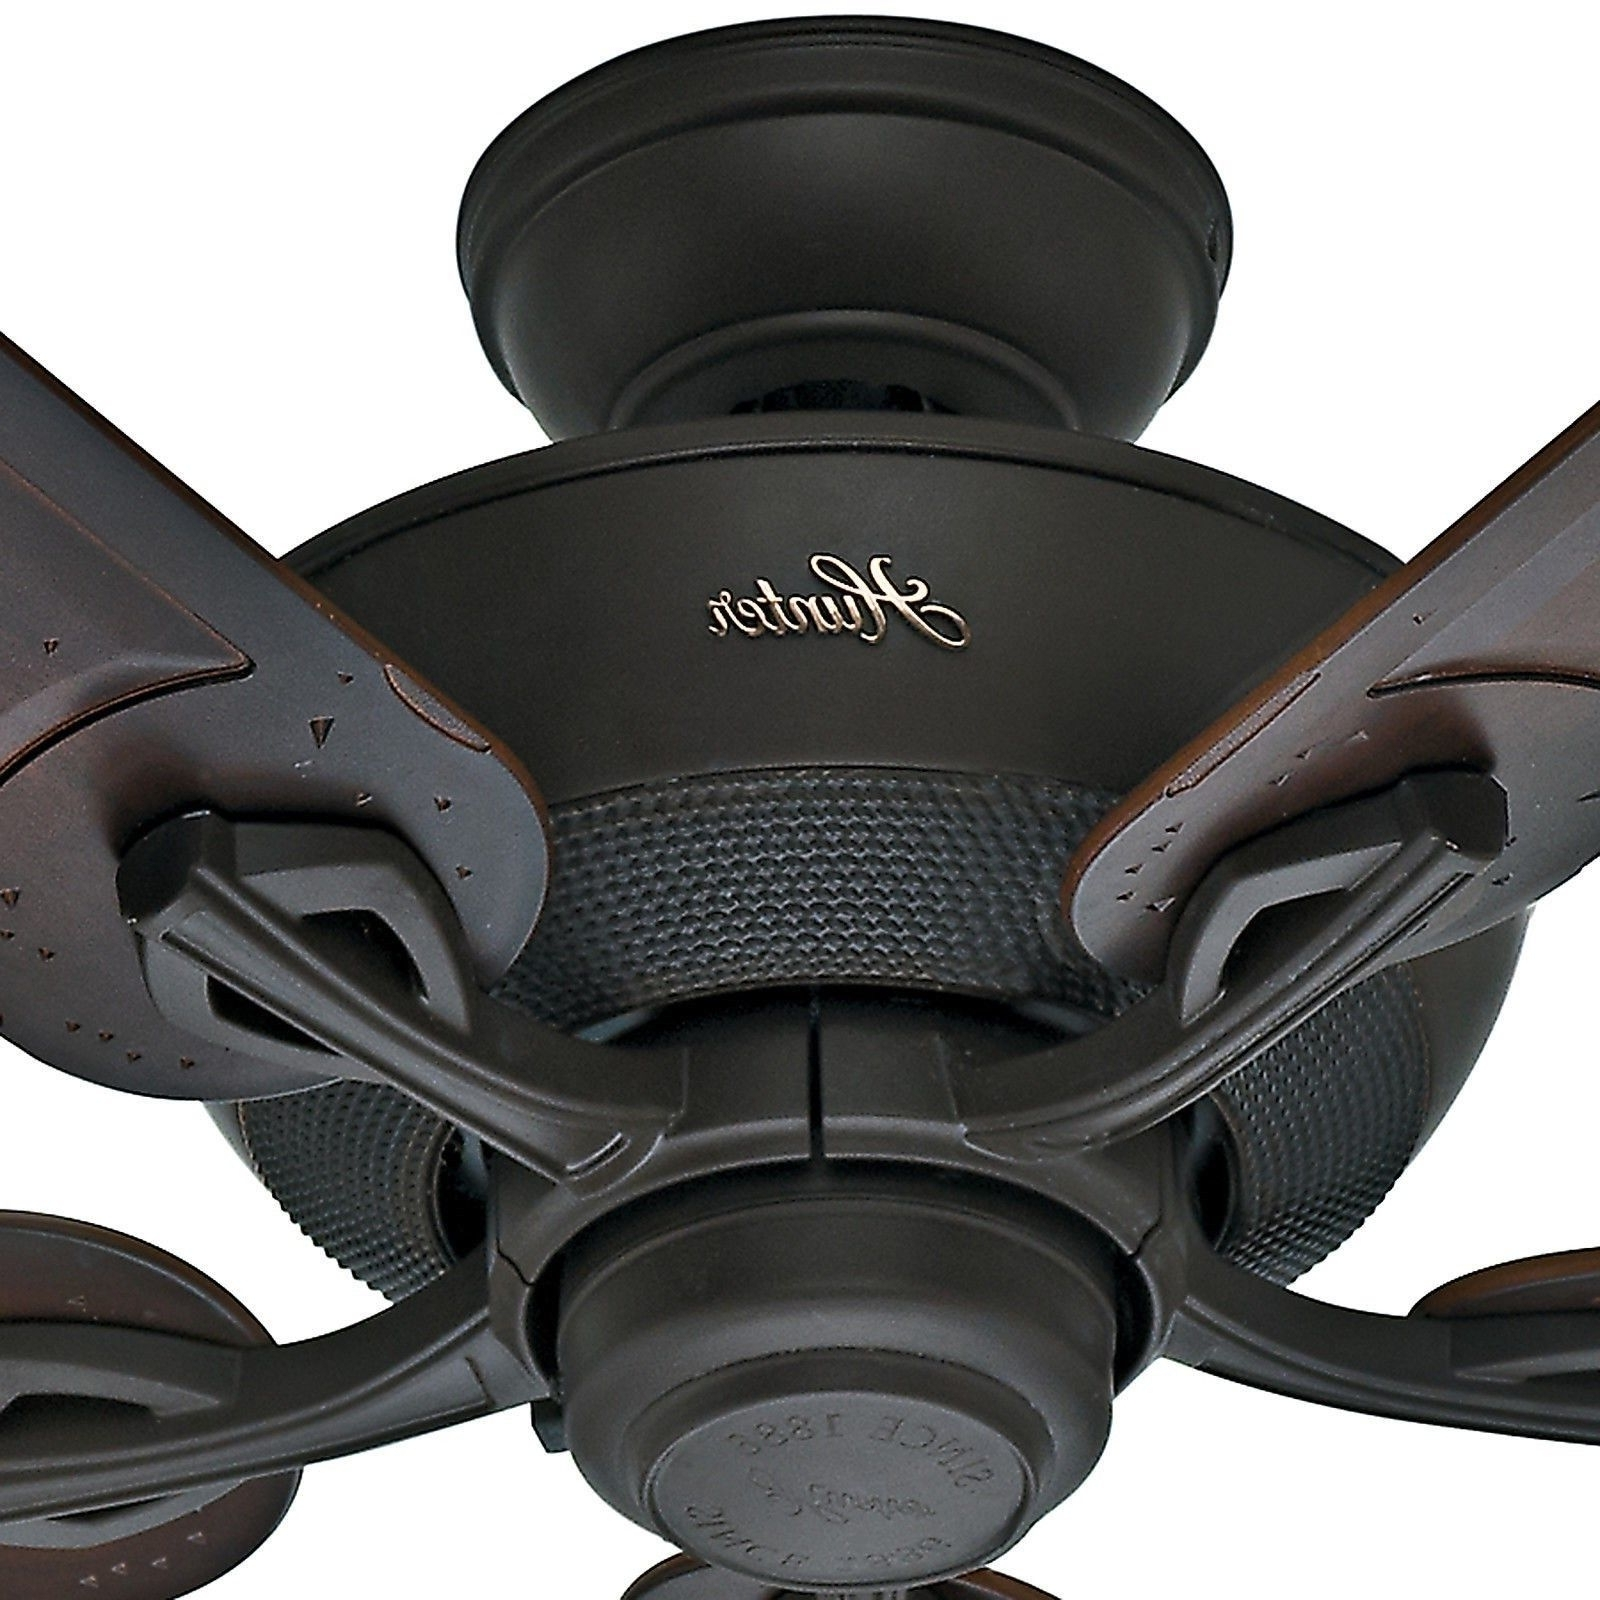 Popular Black Outdoor Ceiling Fans Lighting And Ceiling Fans, Black Outdoor Intended For Energy Star Outdoor Ceiling Fans With Light (View 10 of 20)